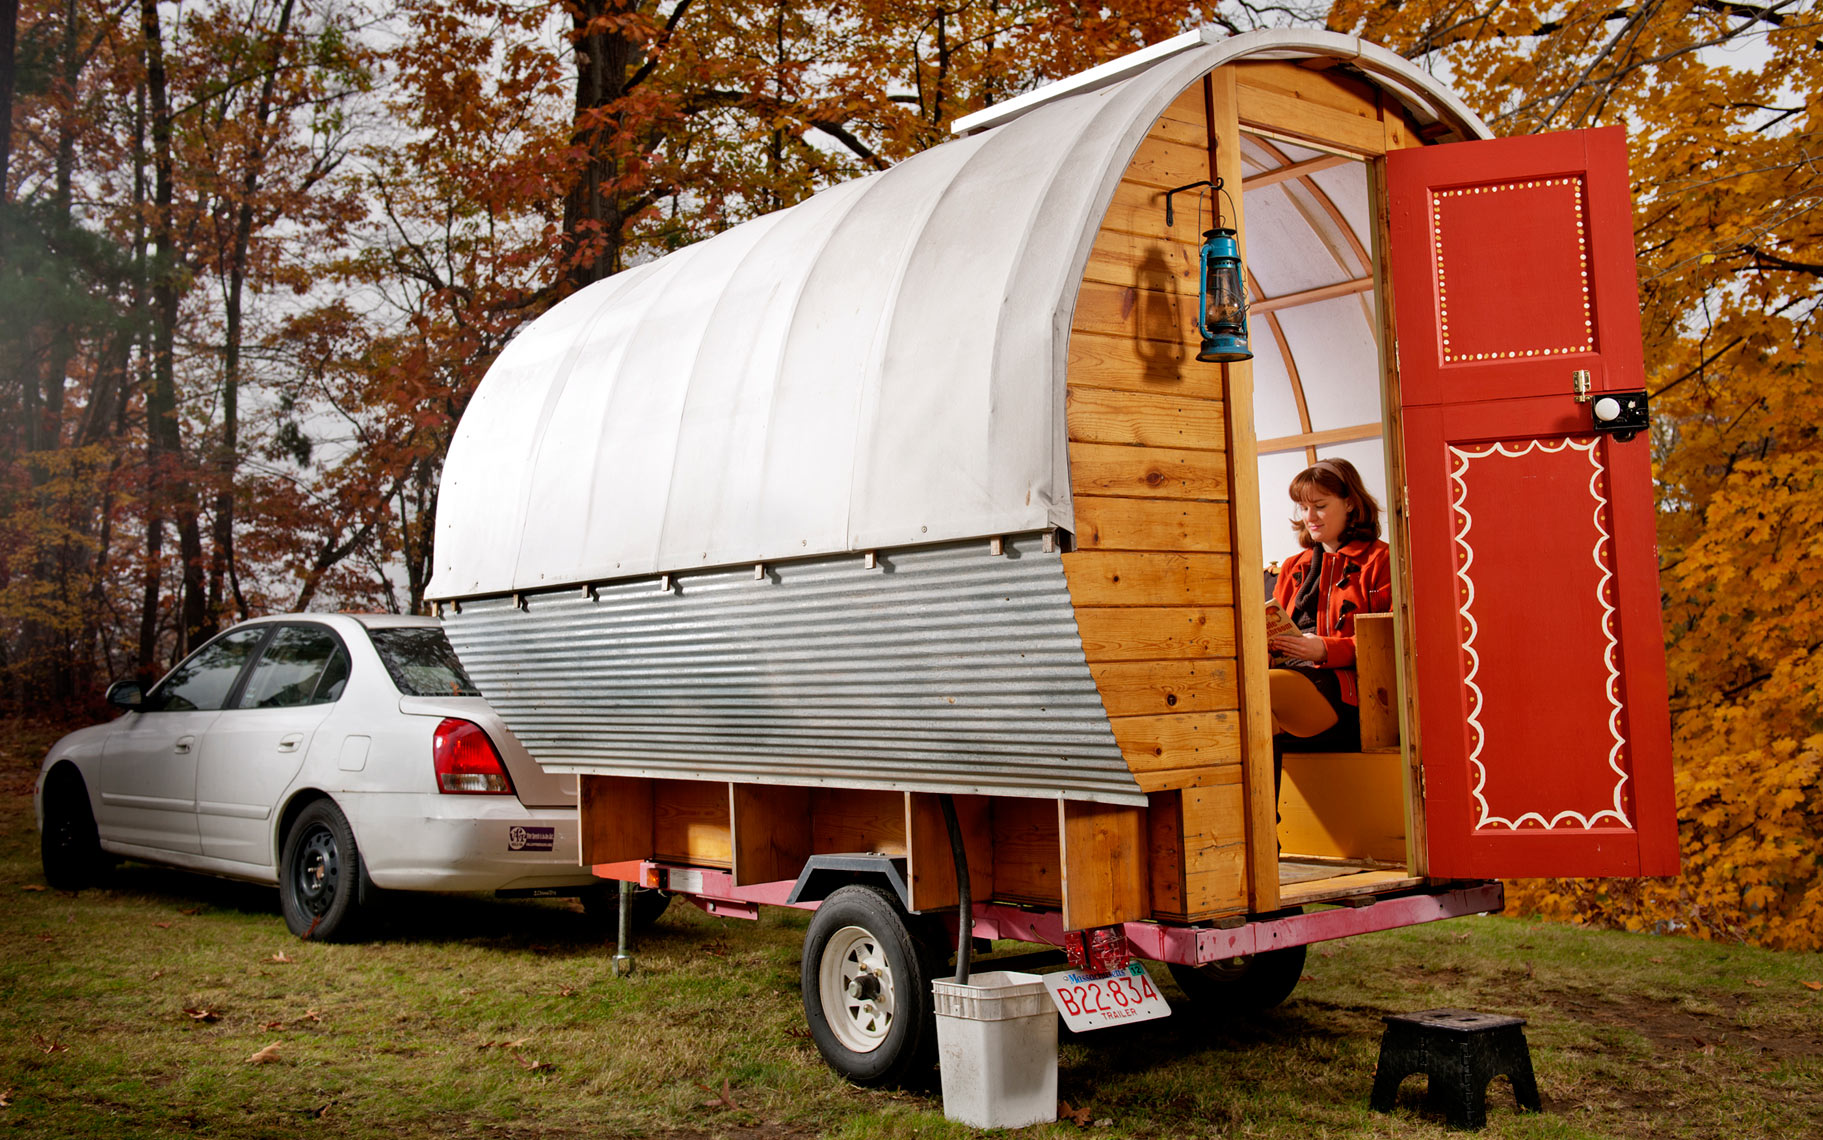 Tristan Chambers and Libby Reinish building a caravan project for Popular Science Magazine